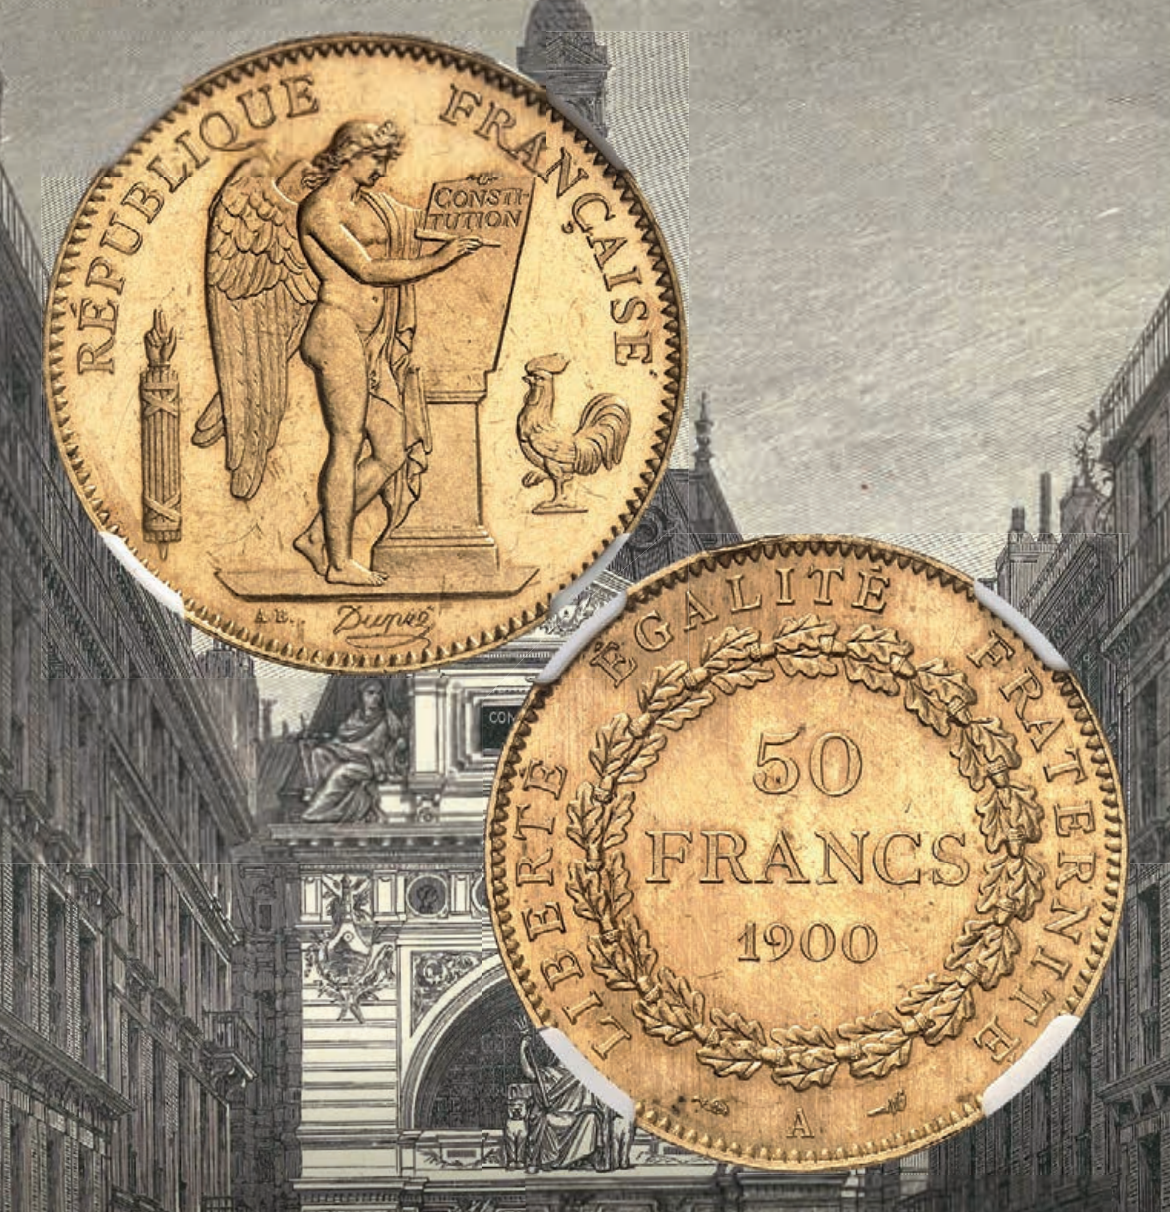 Rare Coin sold for €100,000 at Monaco Auction